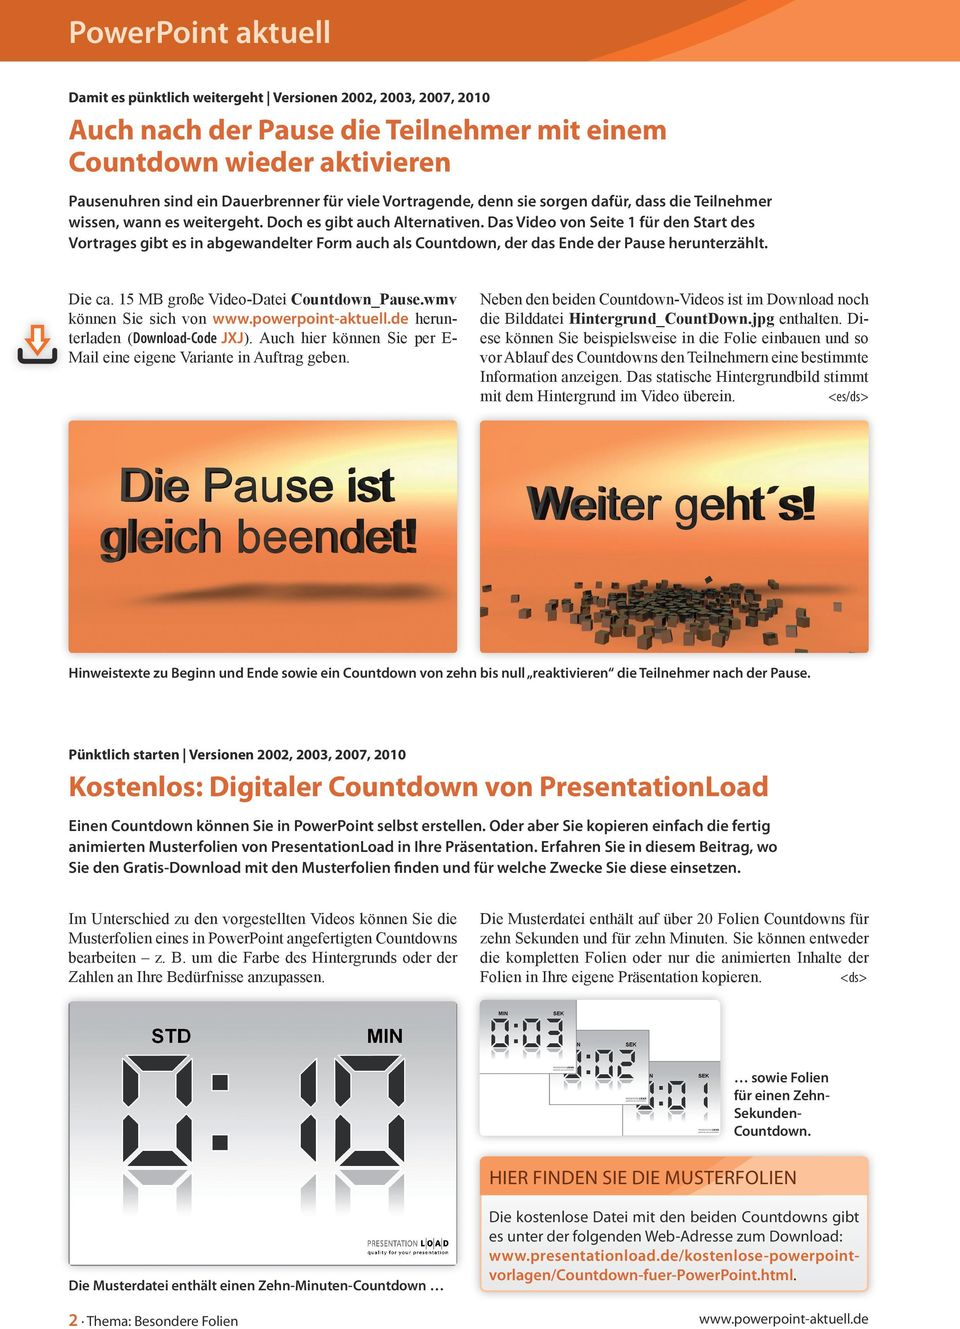 DER Fachinformationsdienst - PDF